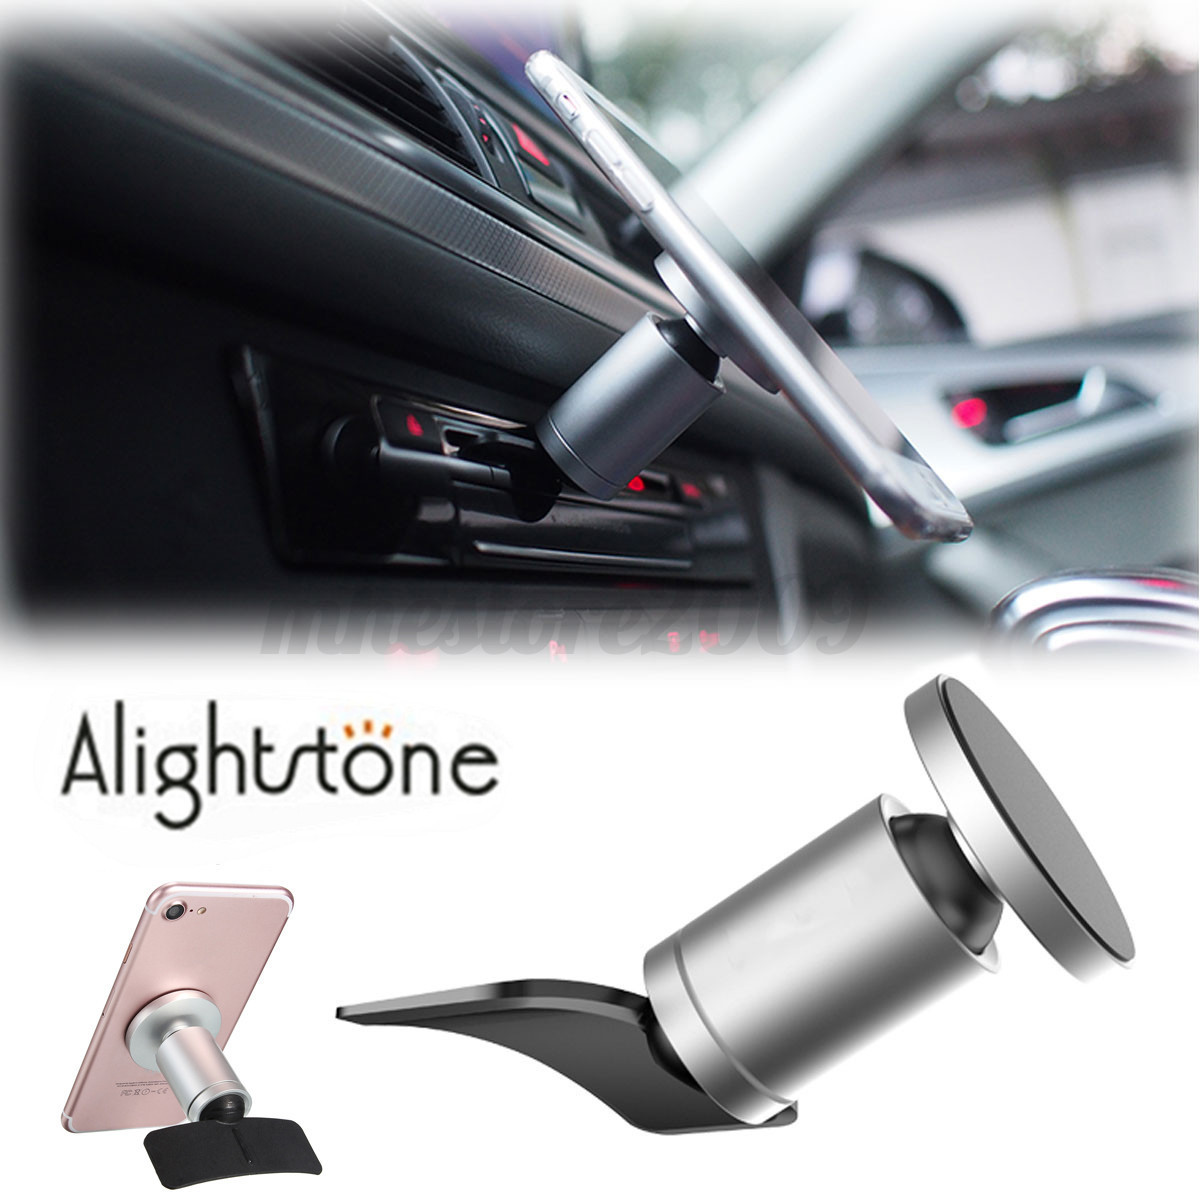 alightstone 360 magnetic car cd slot holder mount bracket for mobile phone gps ebay. Black Bedroom Furniture Sets. Home Design Ideas